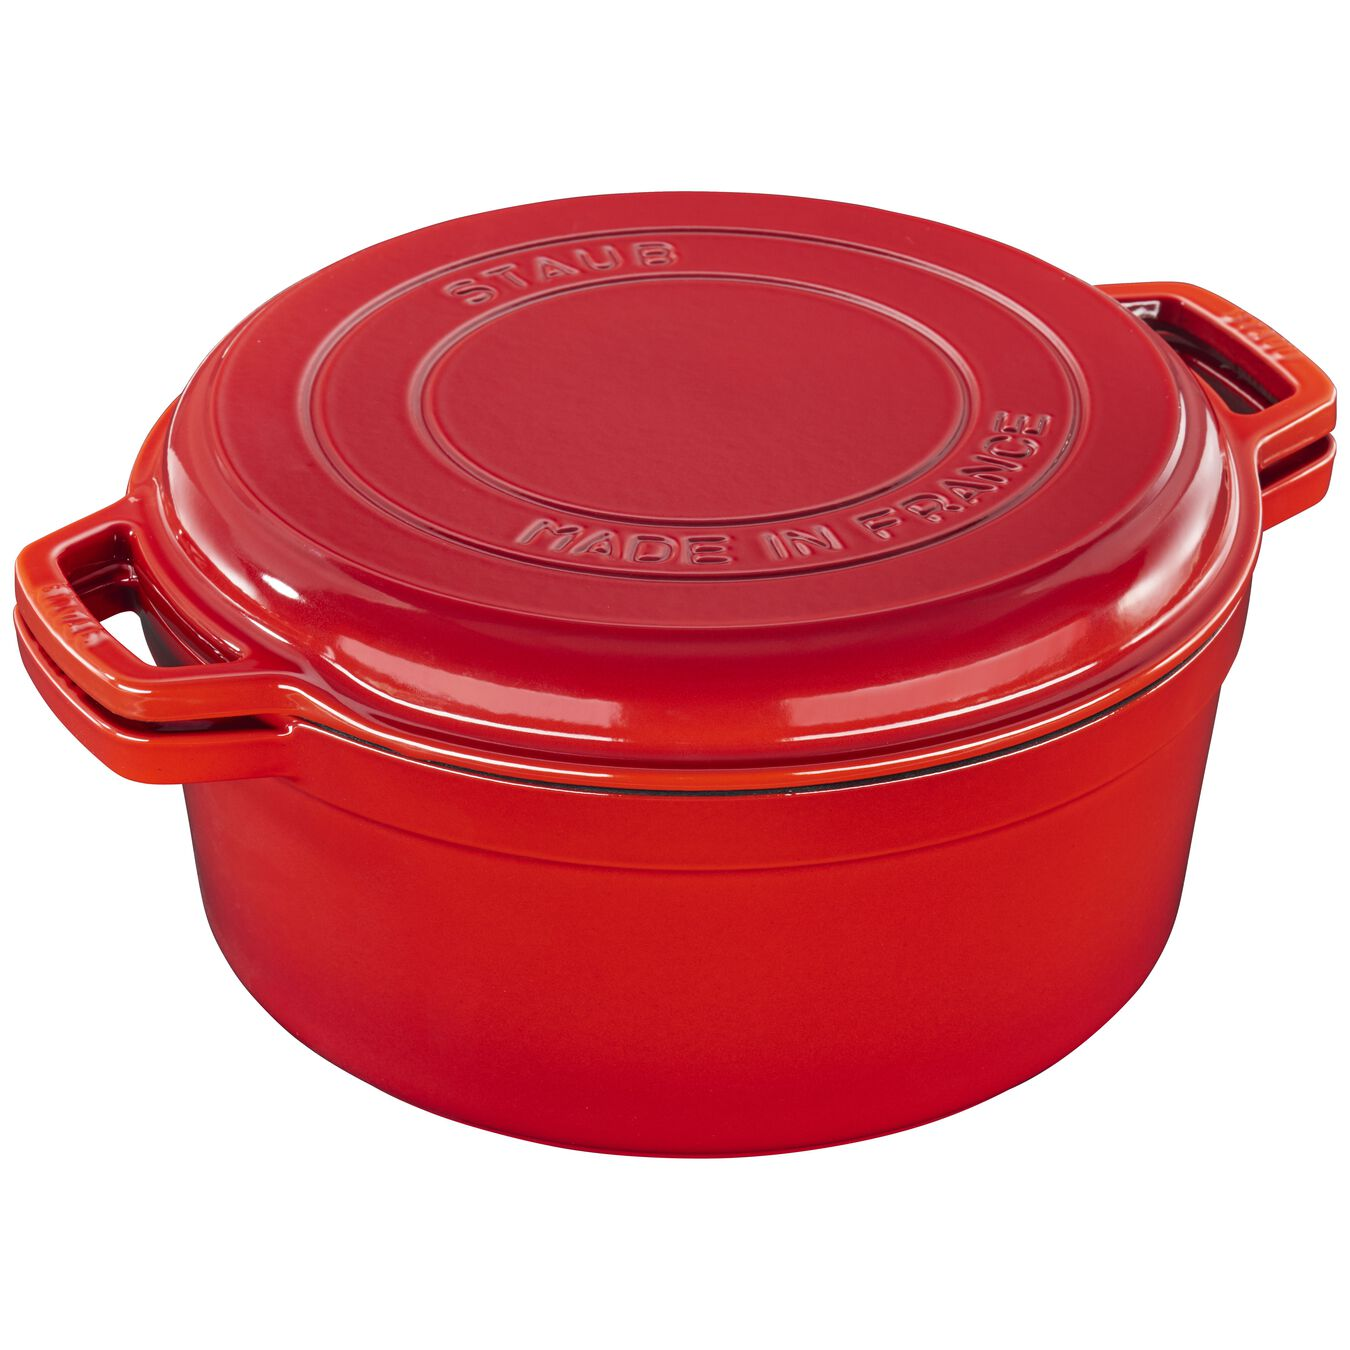 6 l Cast iron round Braise + Grill, Cherry - Visual Imperfections,,large 5